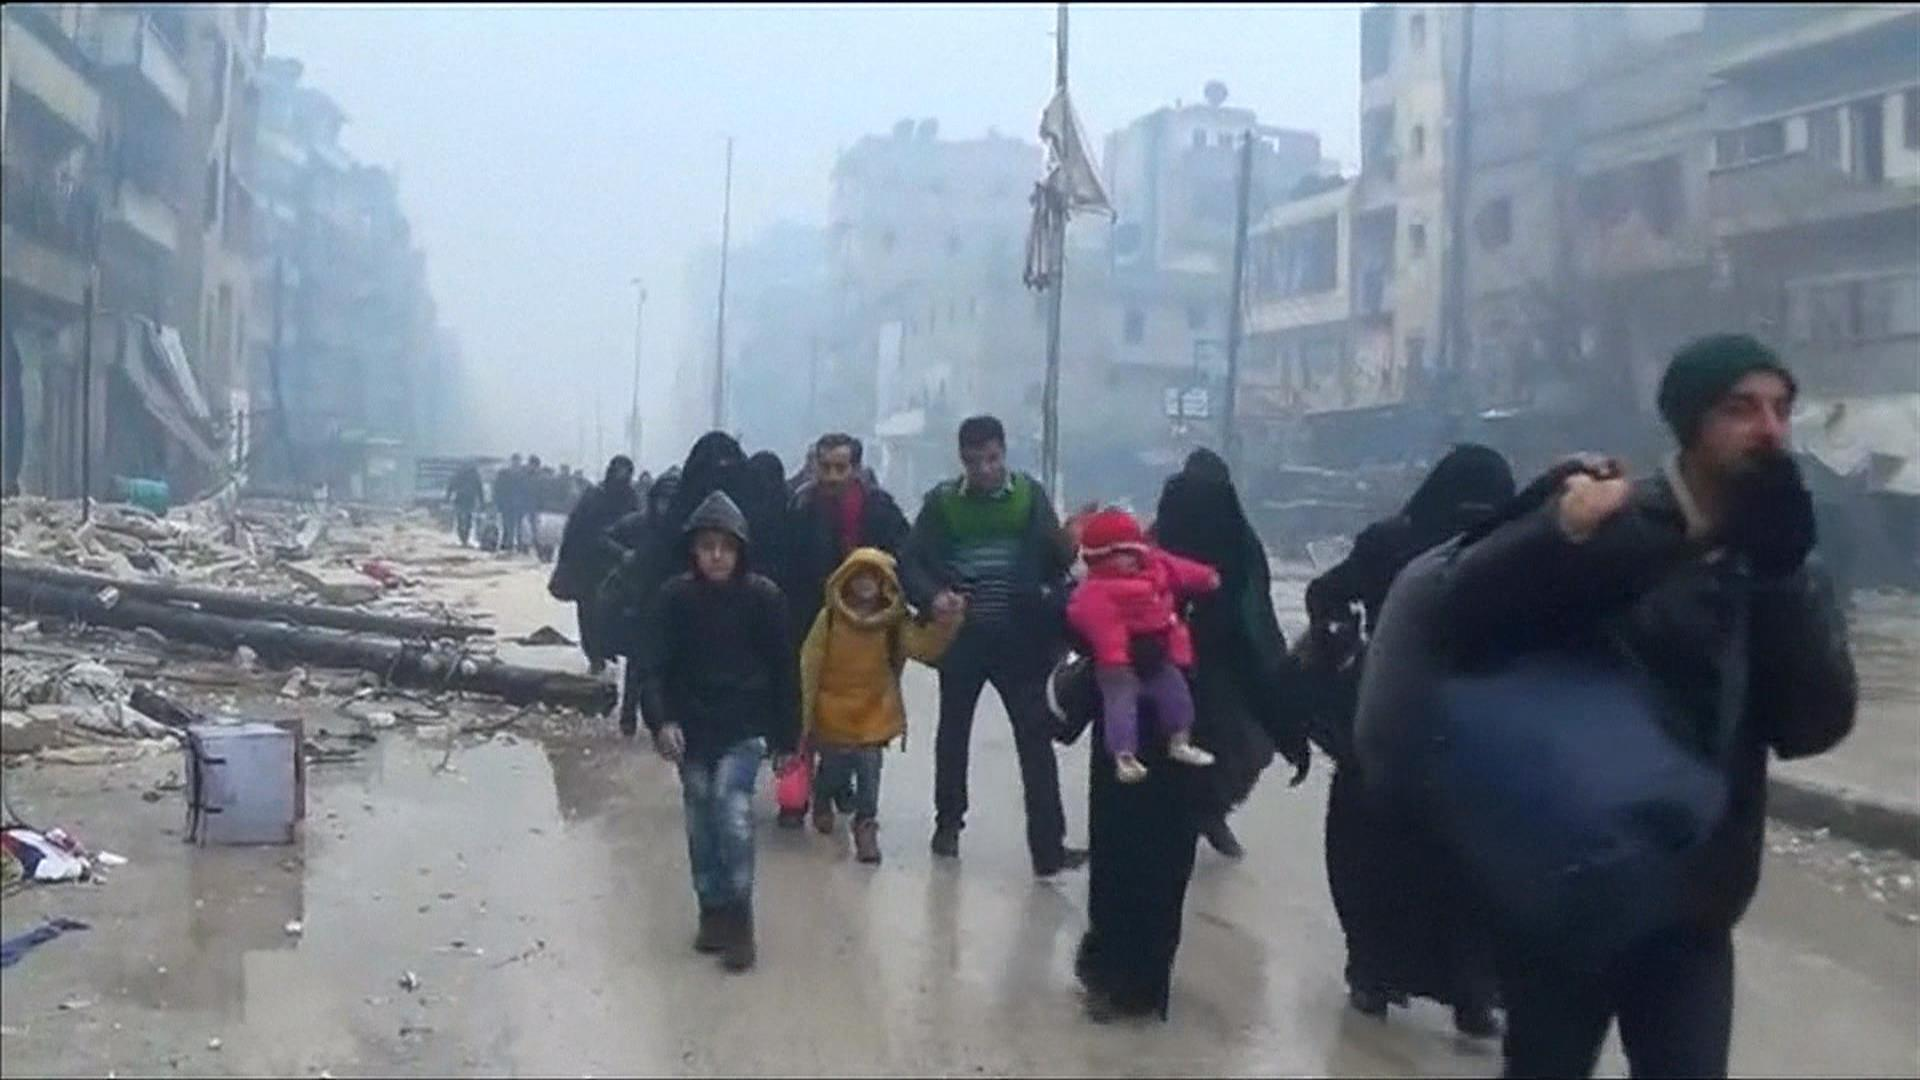 Aleppo Is Falling. What Does This Mean For Assad, ISIS and Russia?